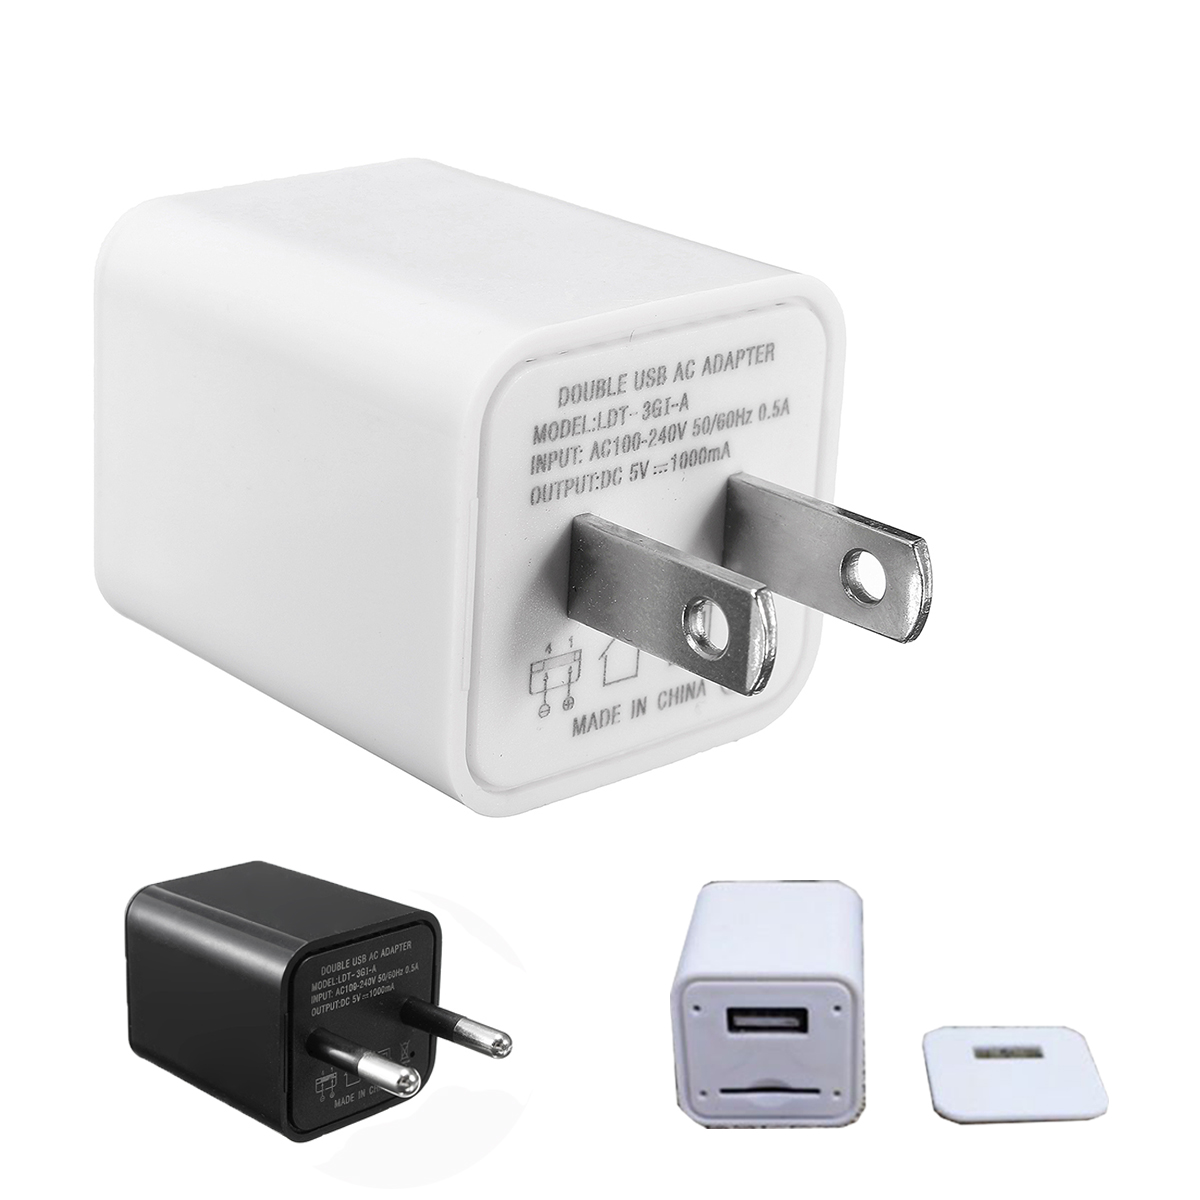 USB Wall Charger Voice Activated GSM SIM Tracker Audio Ear Bug Listening Device